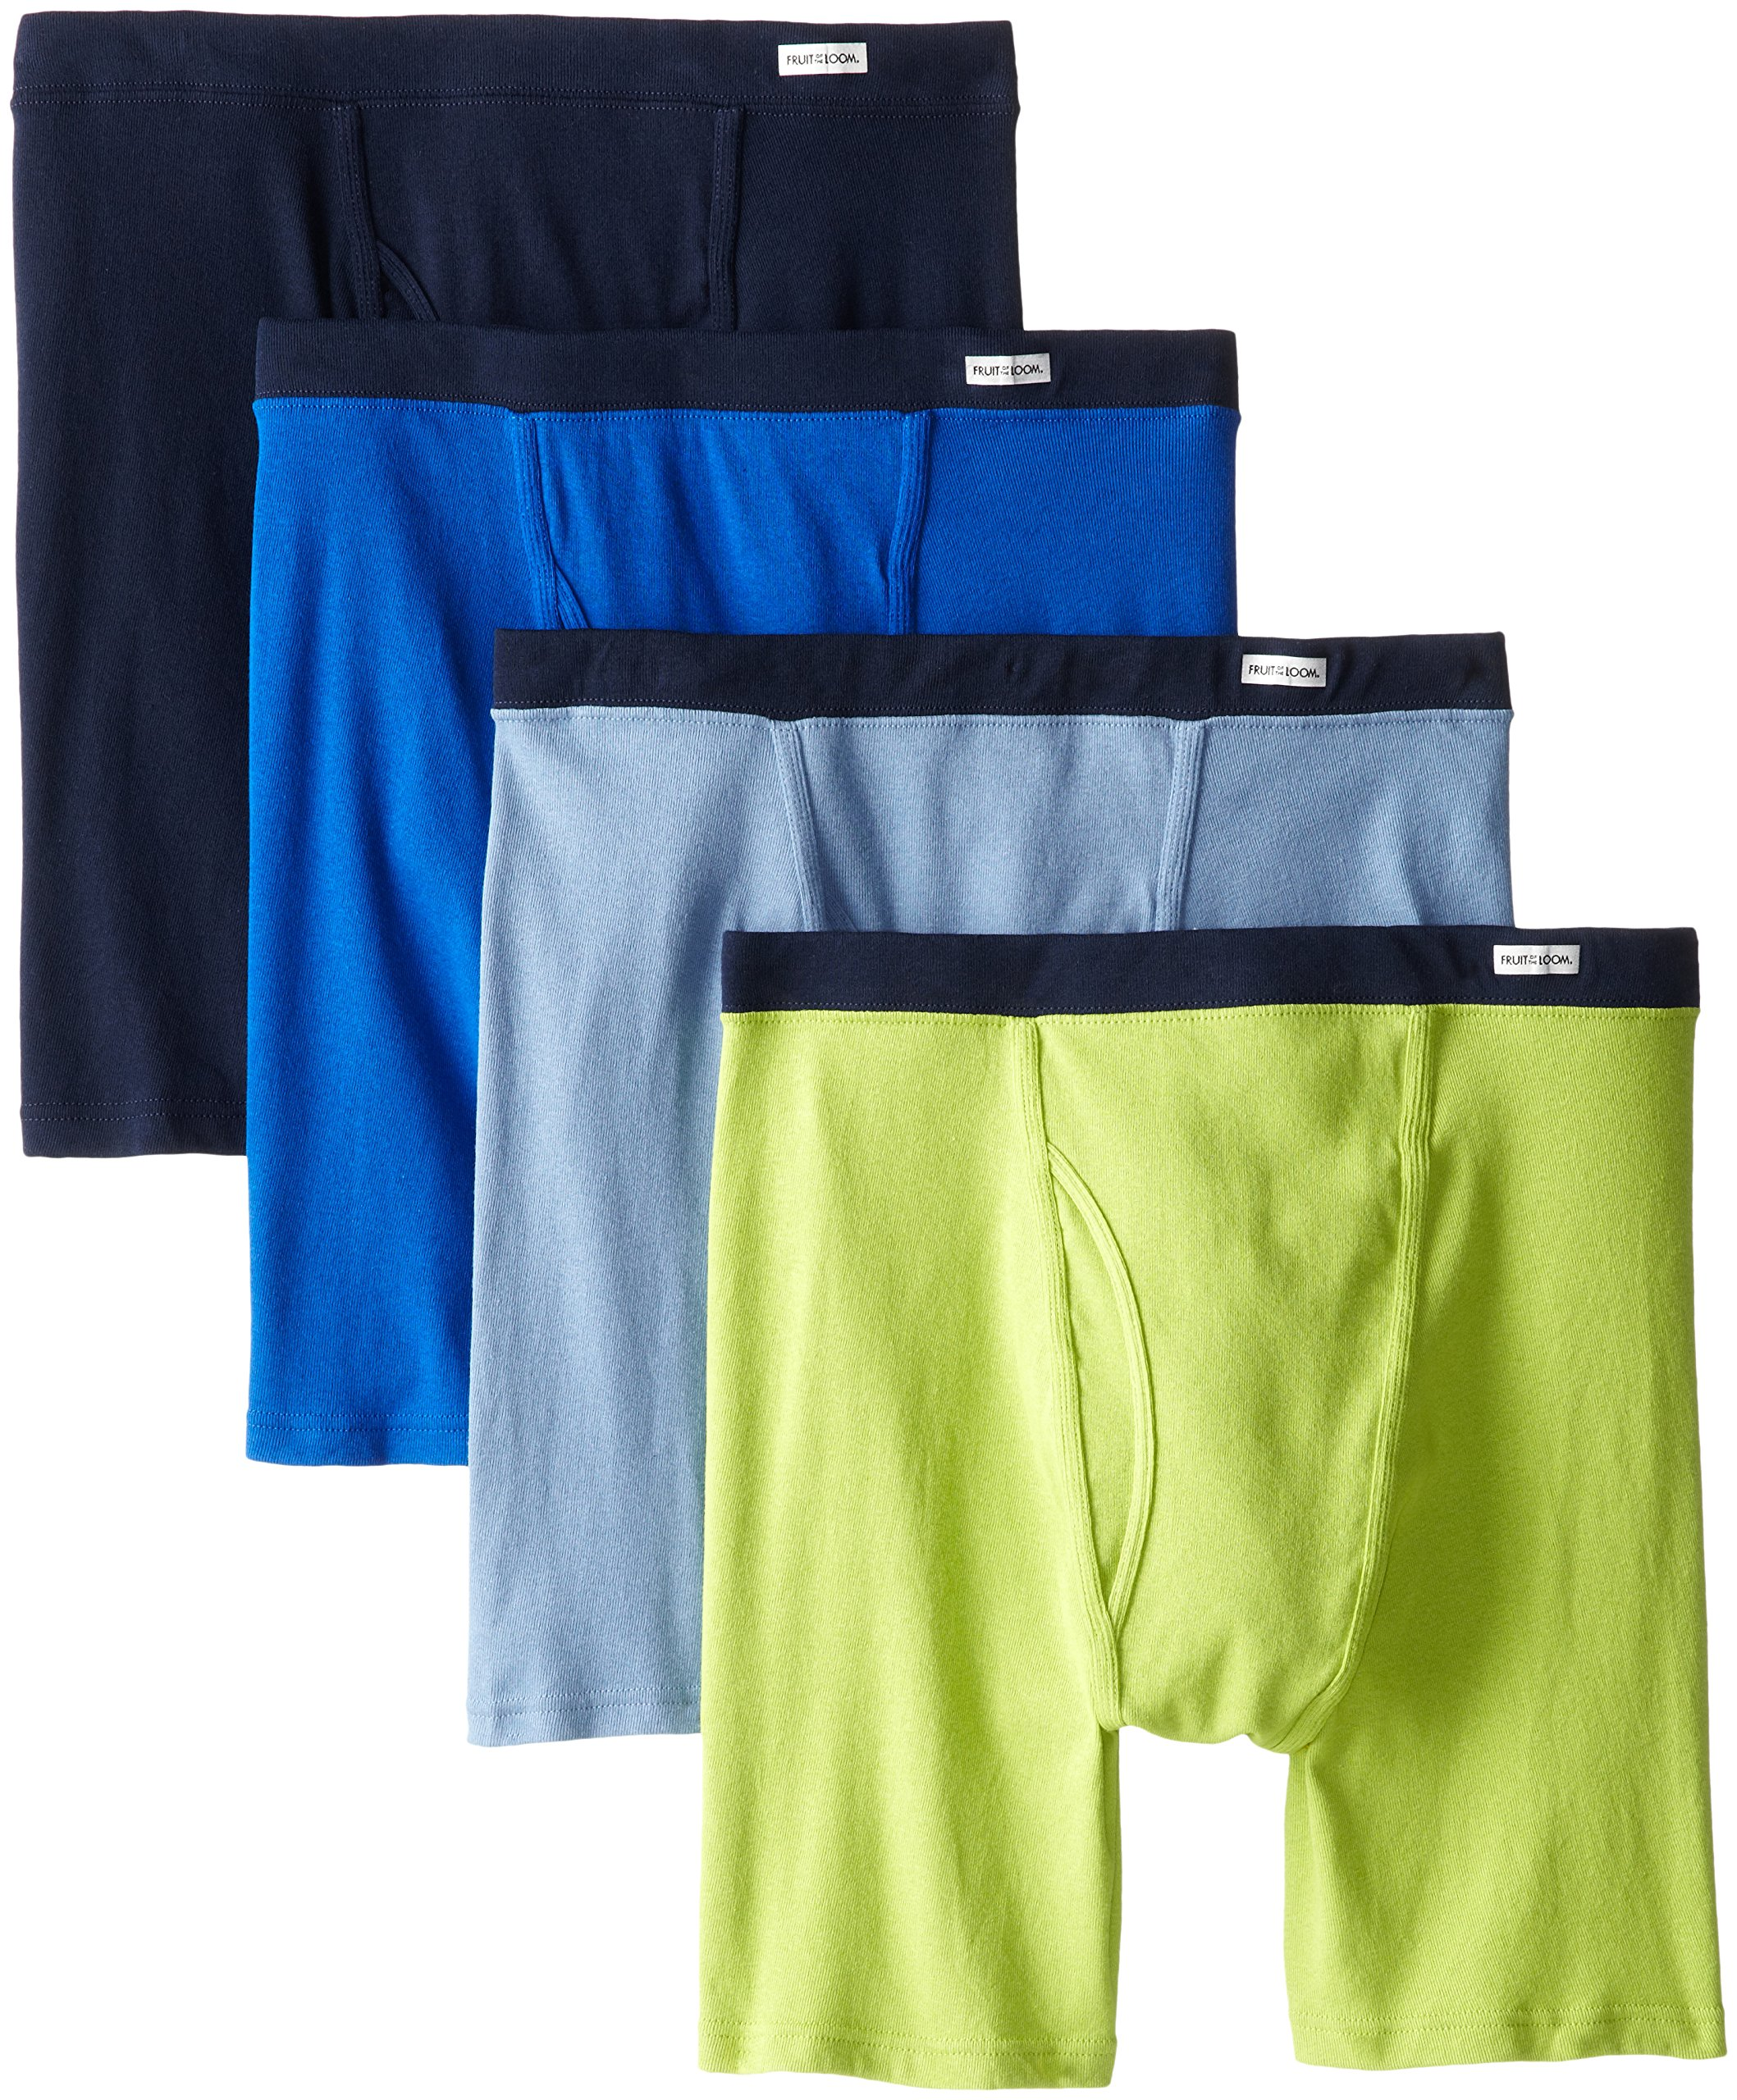 Fruit of the Loom Men's Covered Waistband X-Size Boxer Brief, Assorted, 3X-Large(Pack of 4)